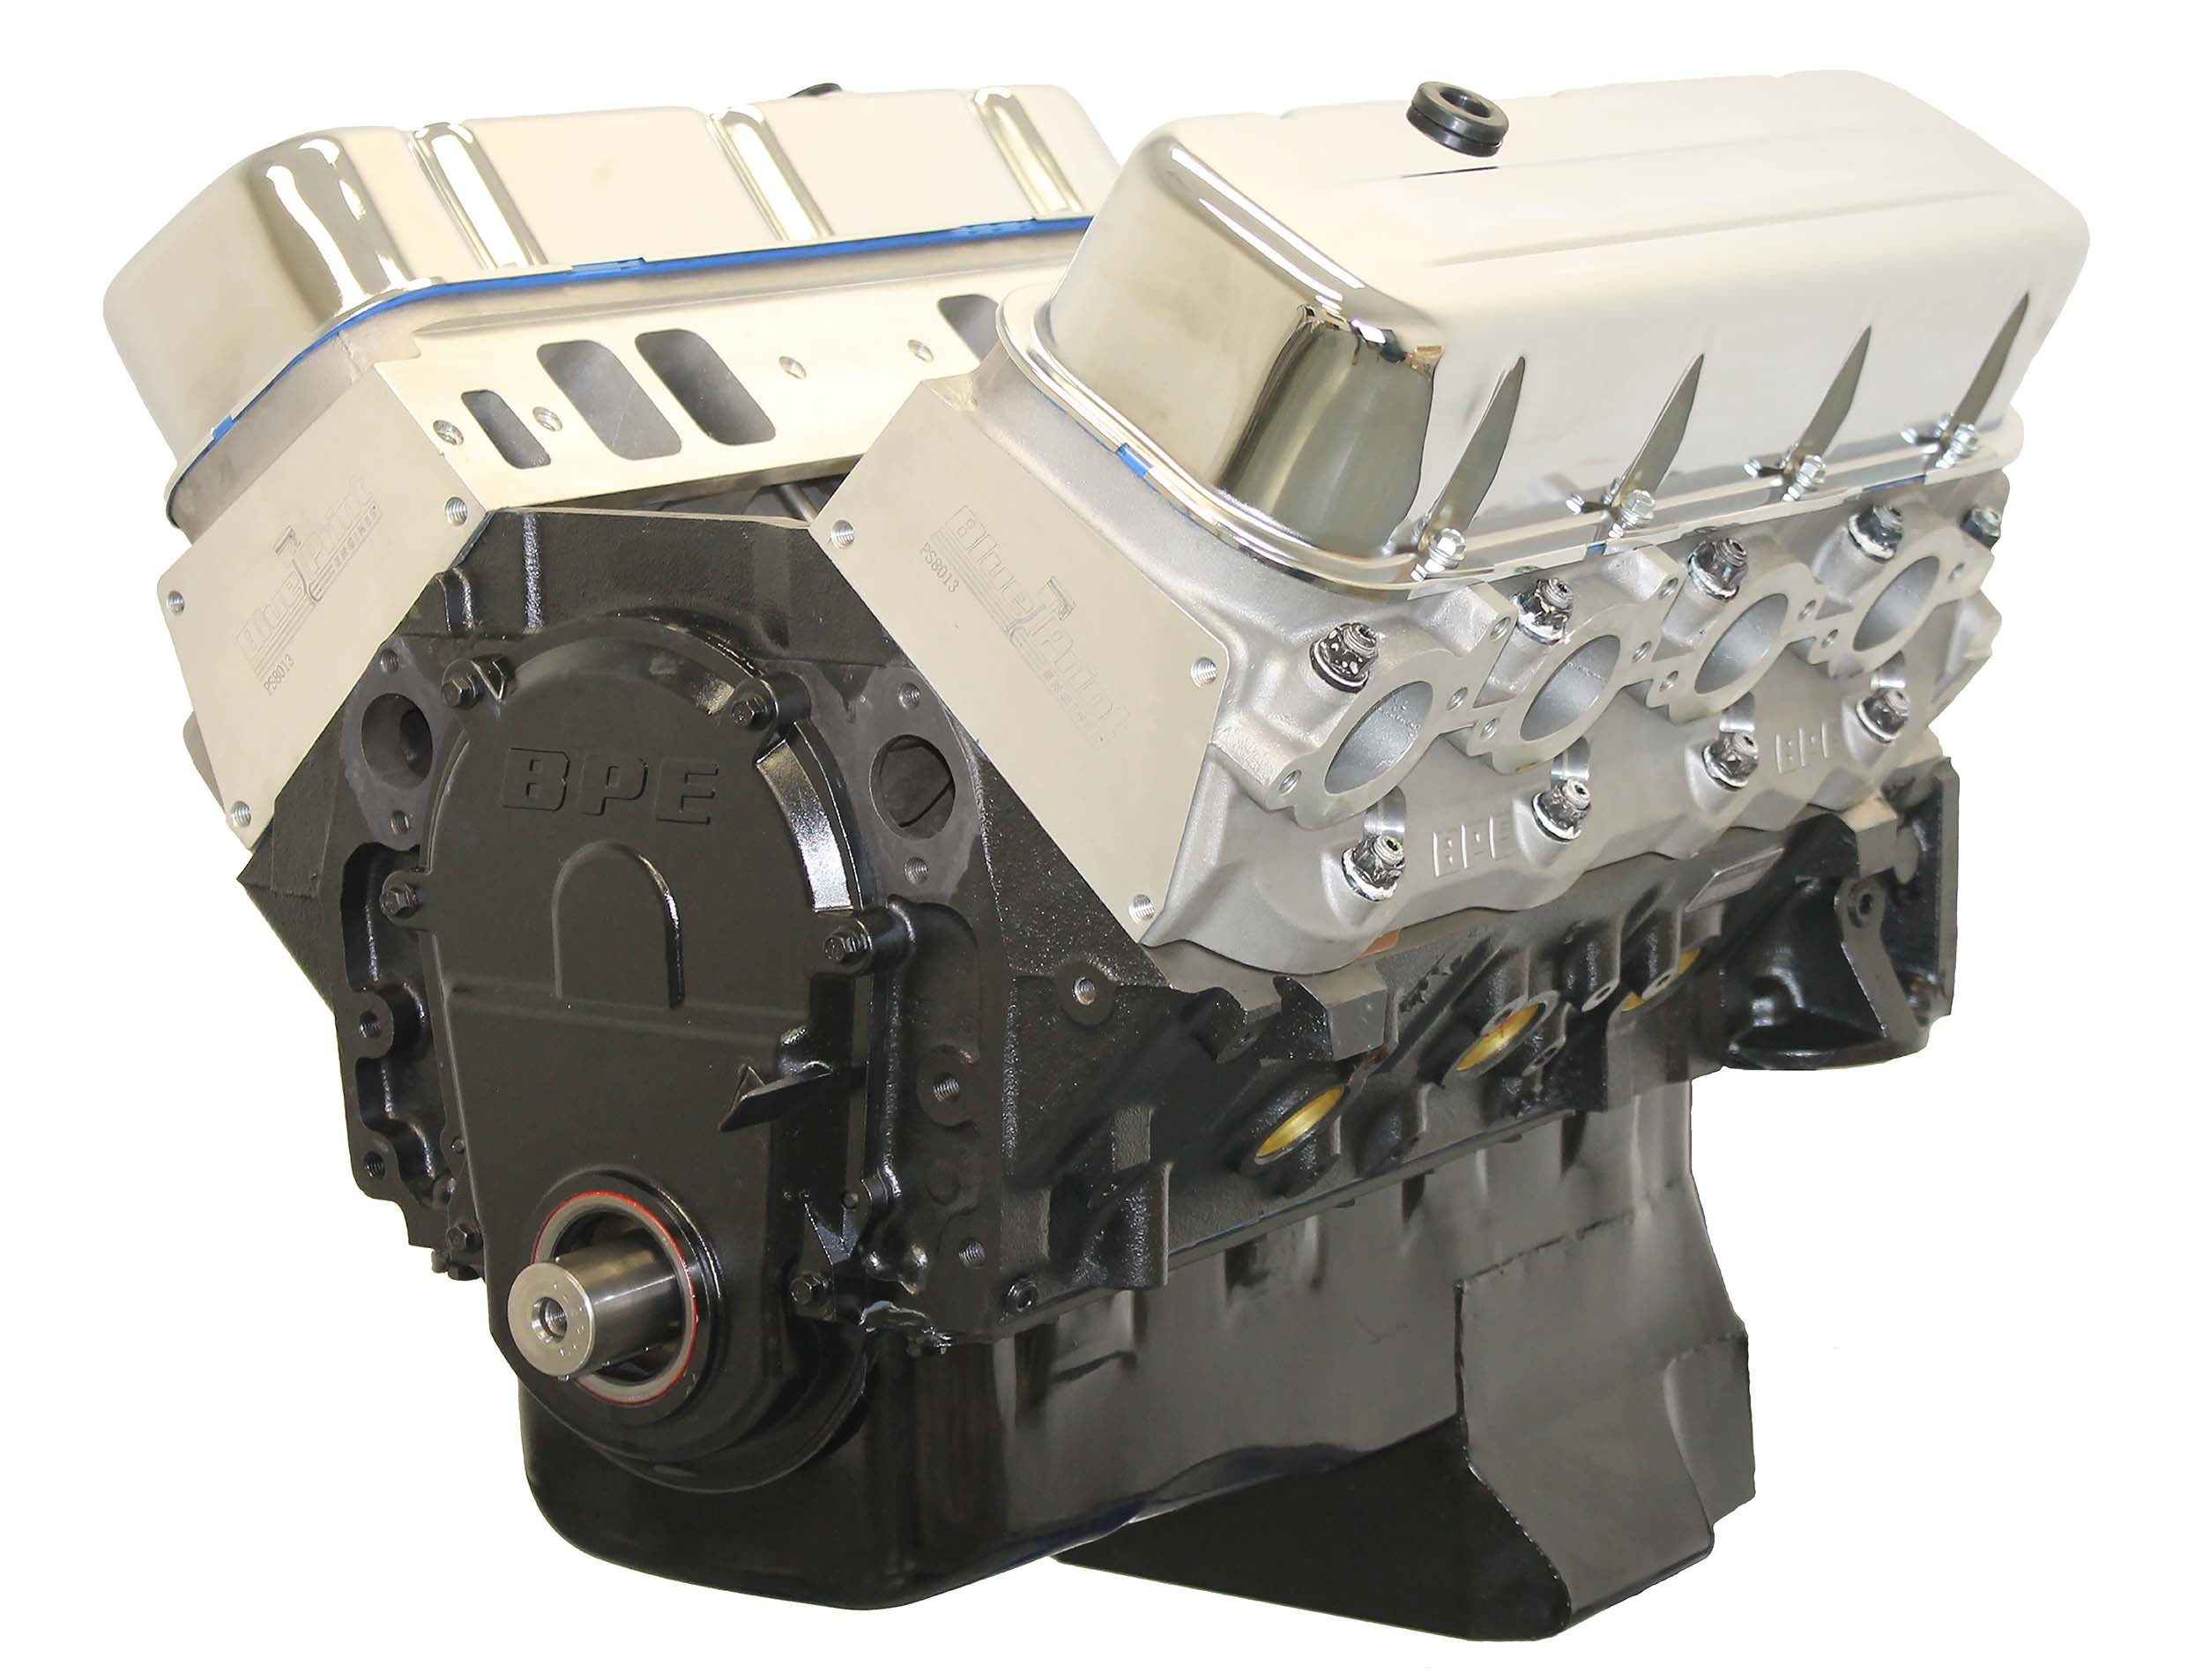 Big Block Chevy Power Adder Crate Engine